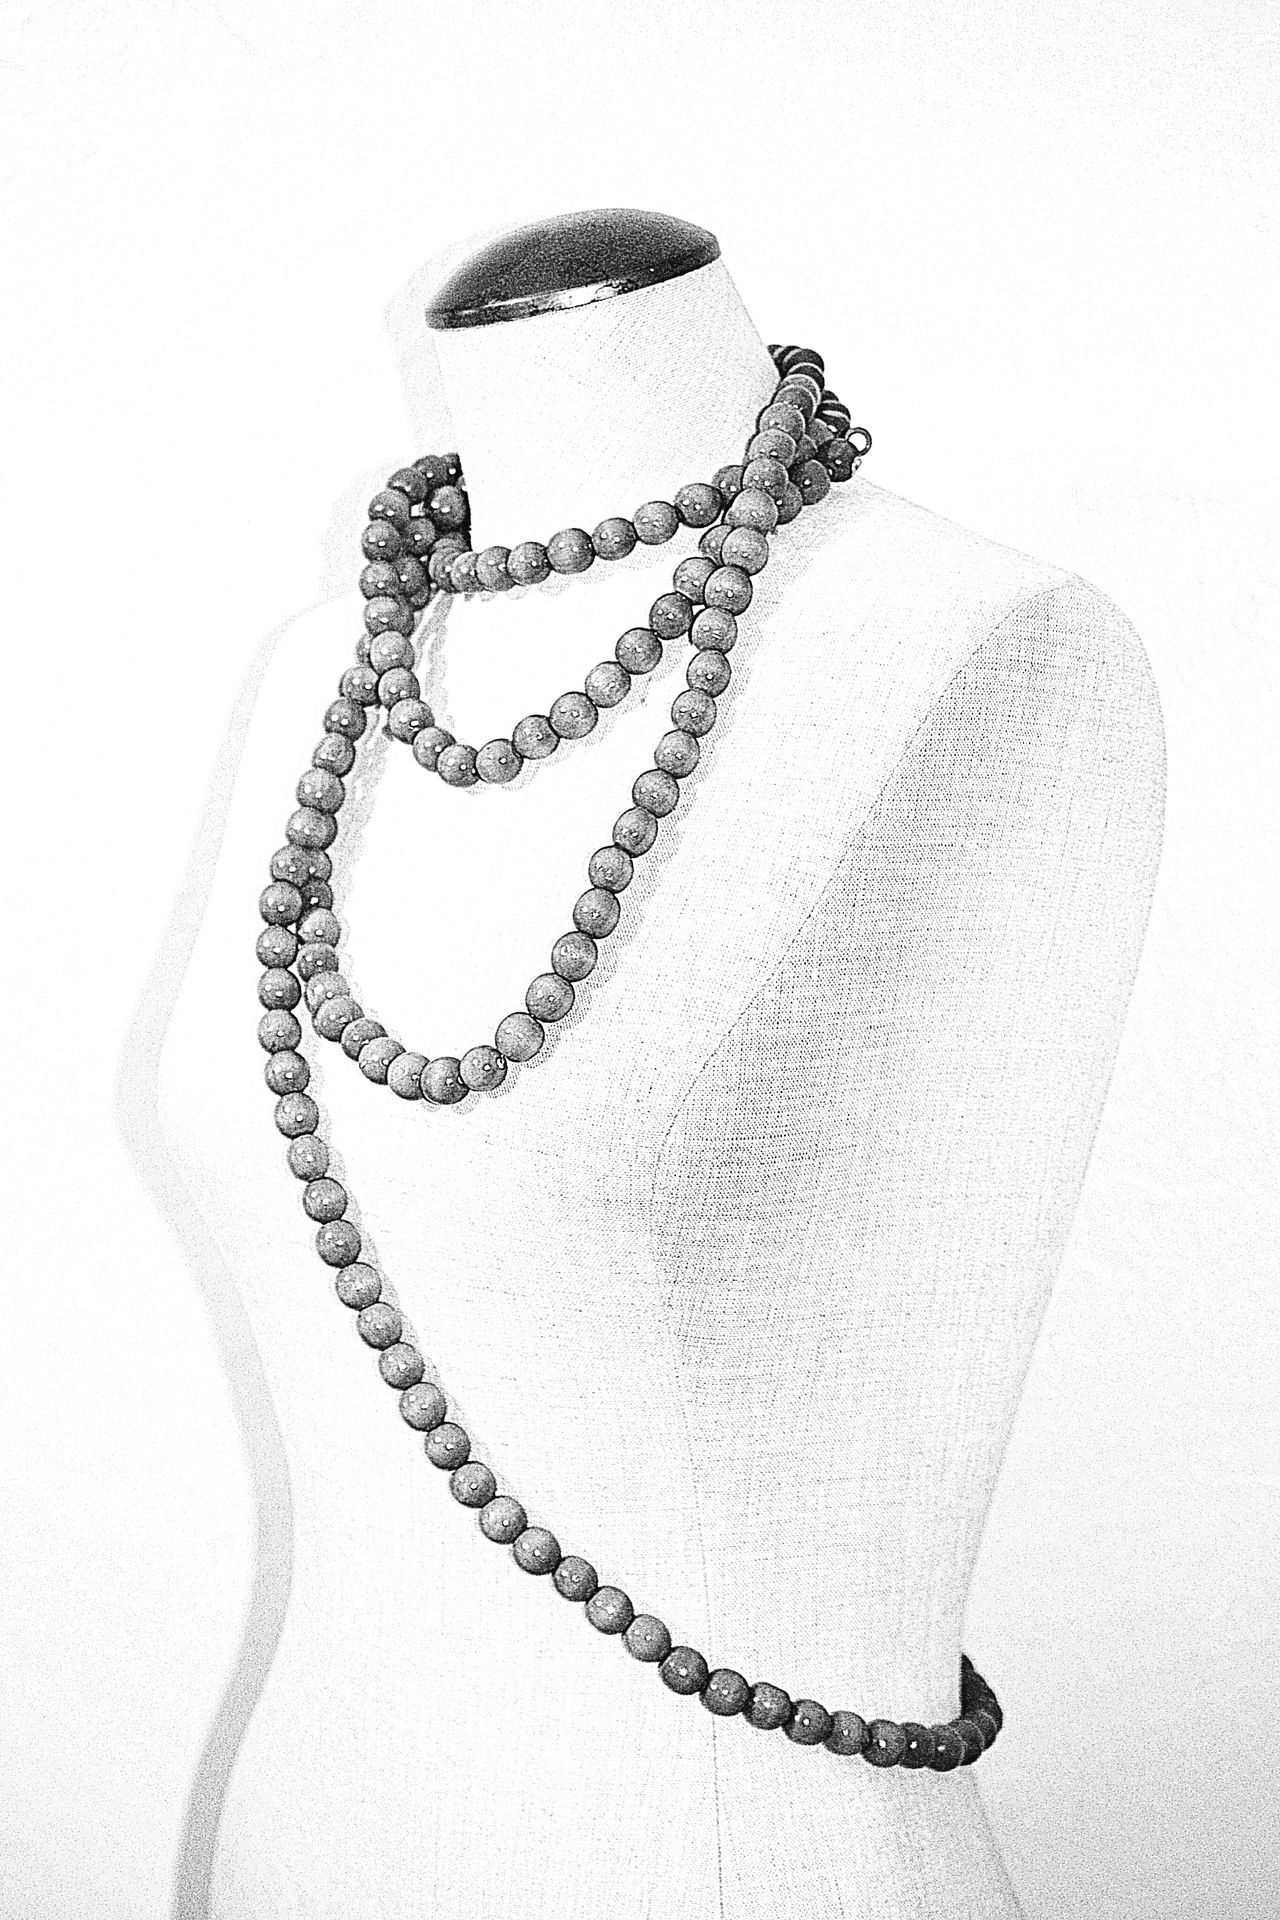 White Album Human Representation Minimalism Simplicity Human Form Fashion Accesories Fashion B&w Black And White Beads Dress Form Beads On A String